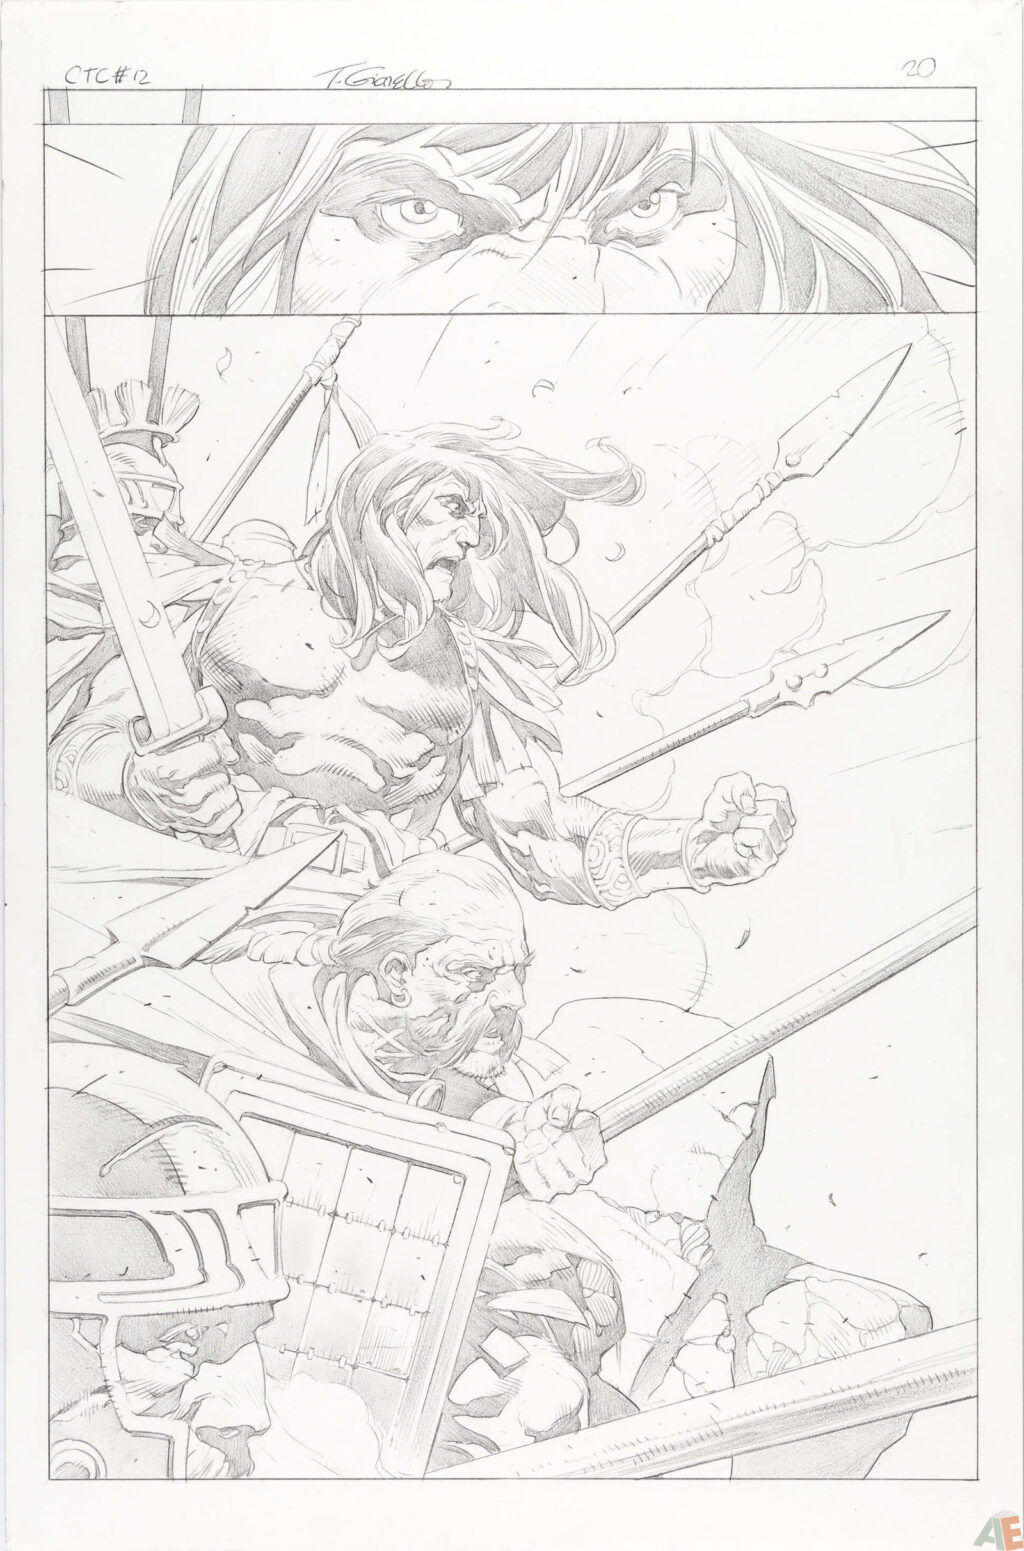 Conan the Cimmerian issue 12 page 20 by Tomás Giorello